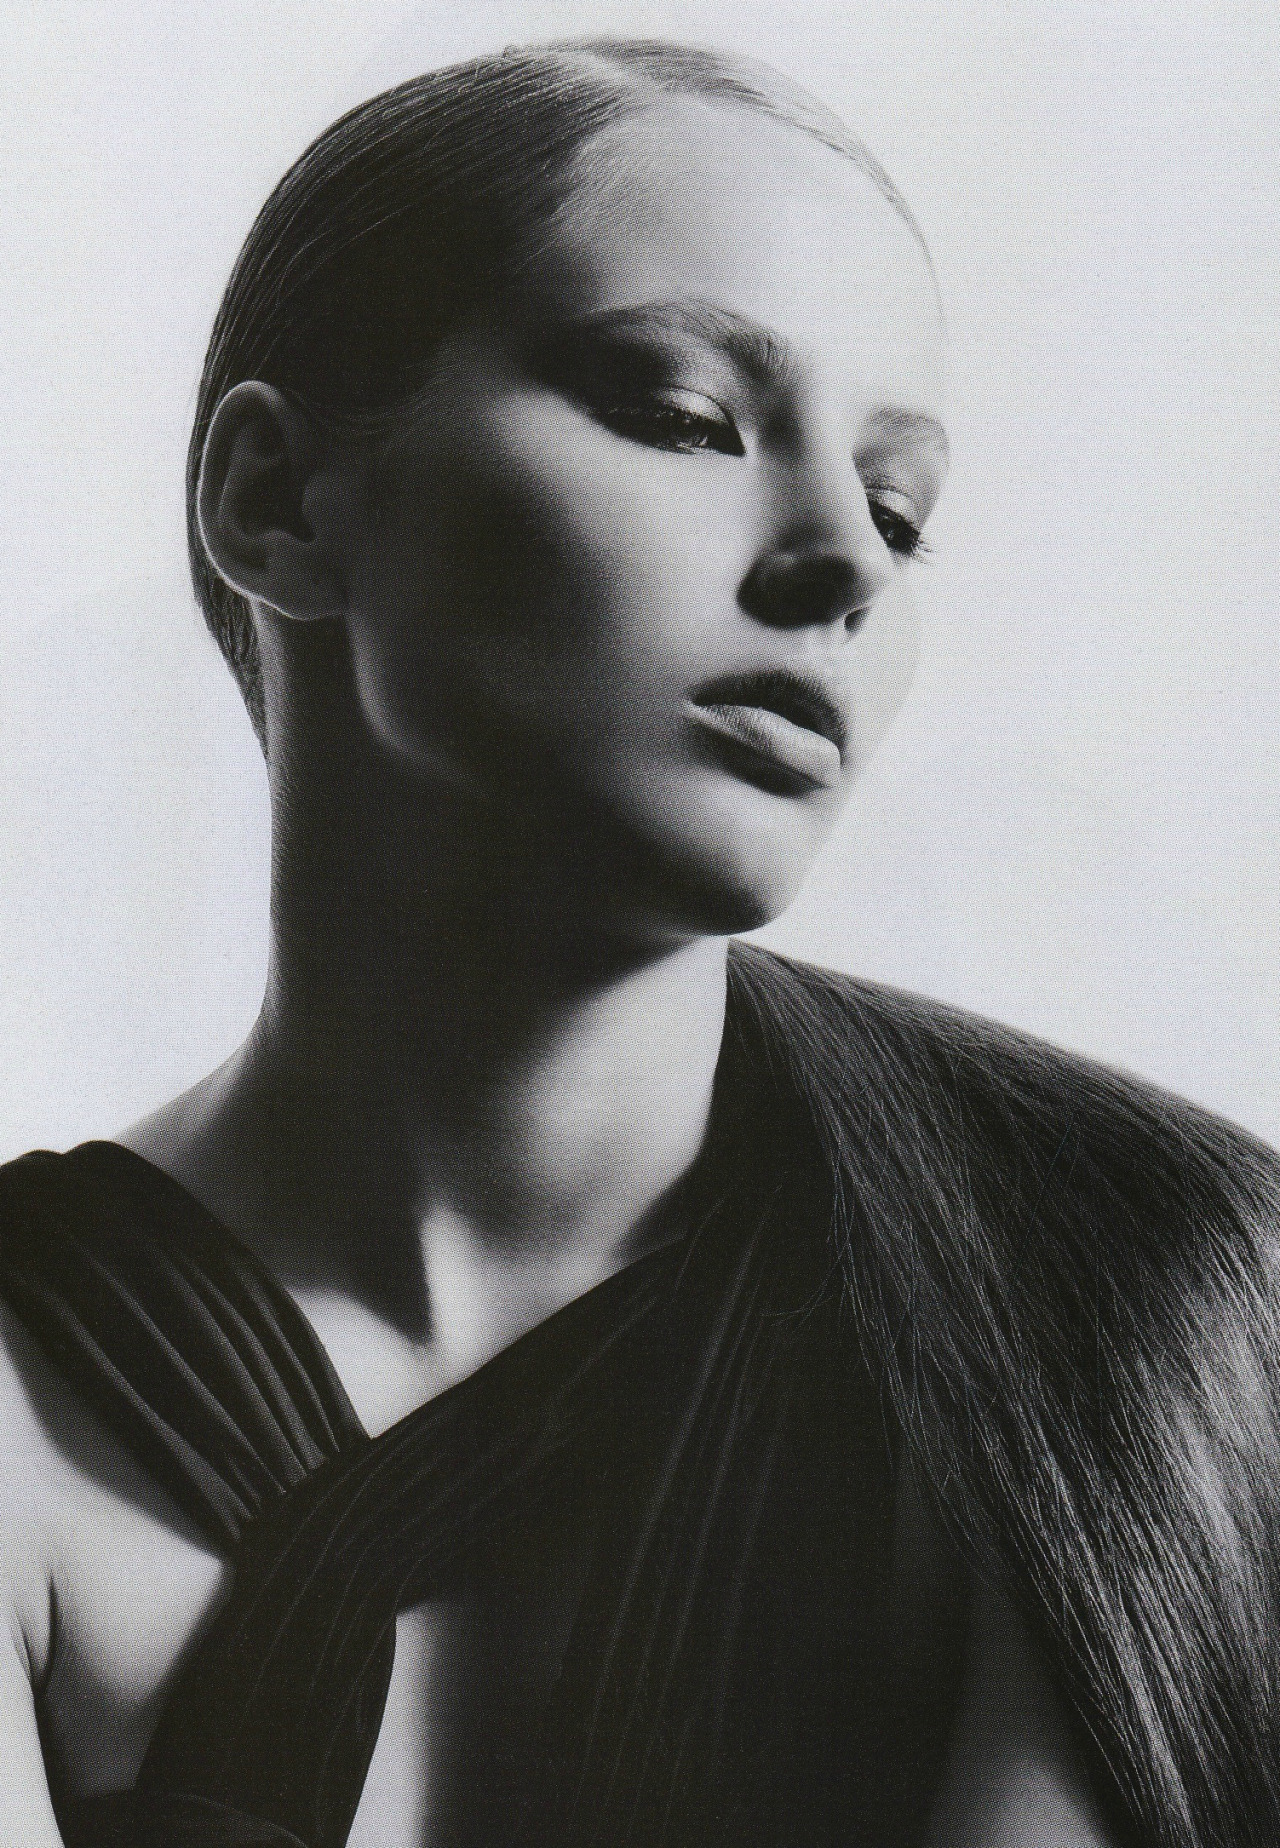 """La Robe Noire""Ruslana Korshunova by Takay for L'Officiel September 2005"